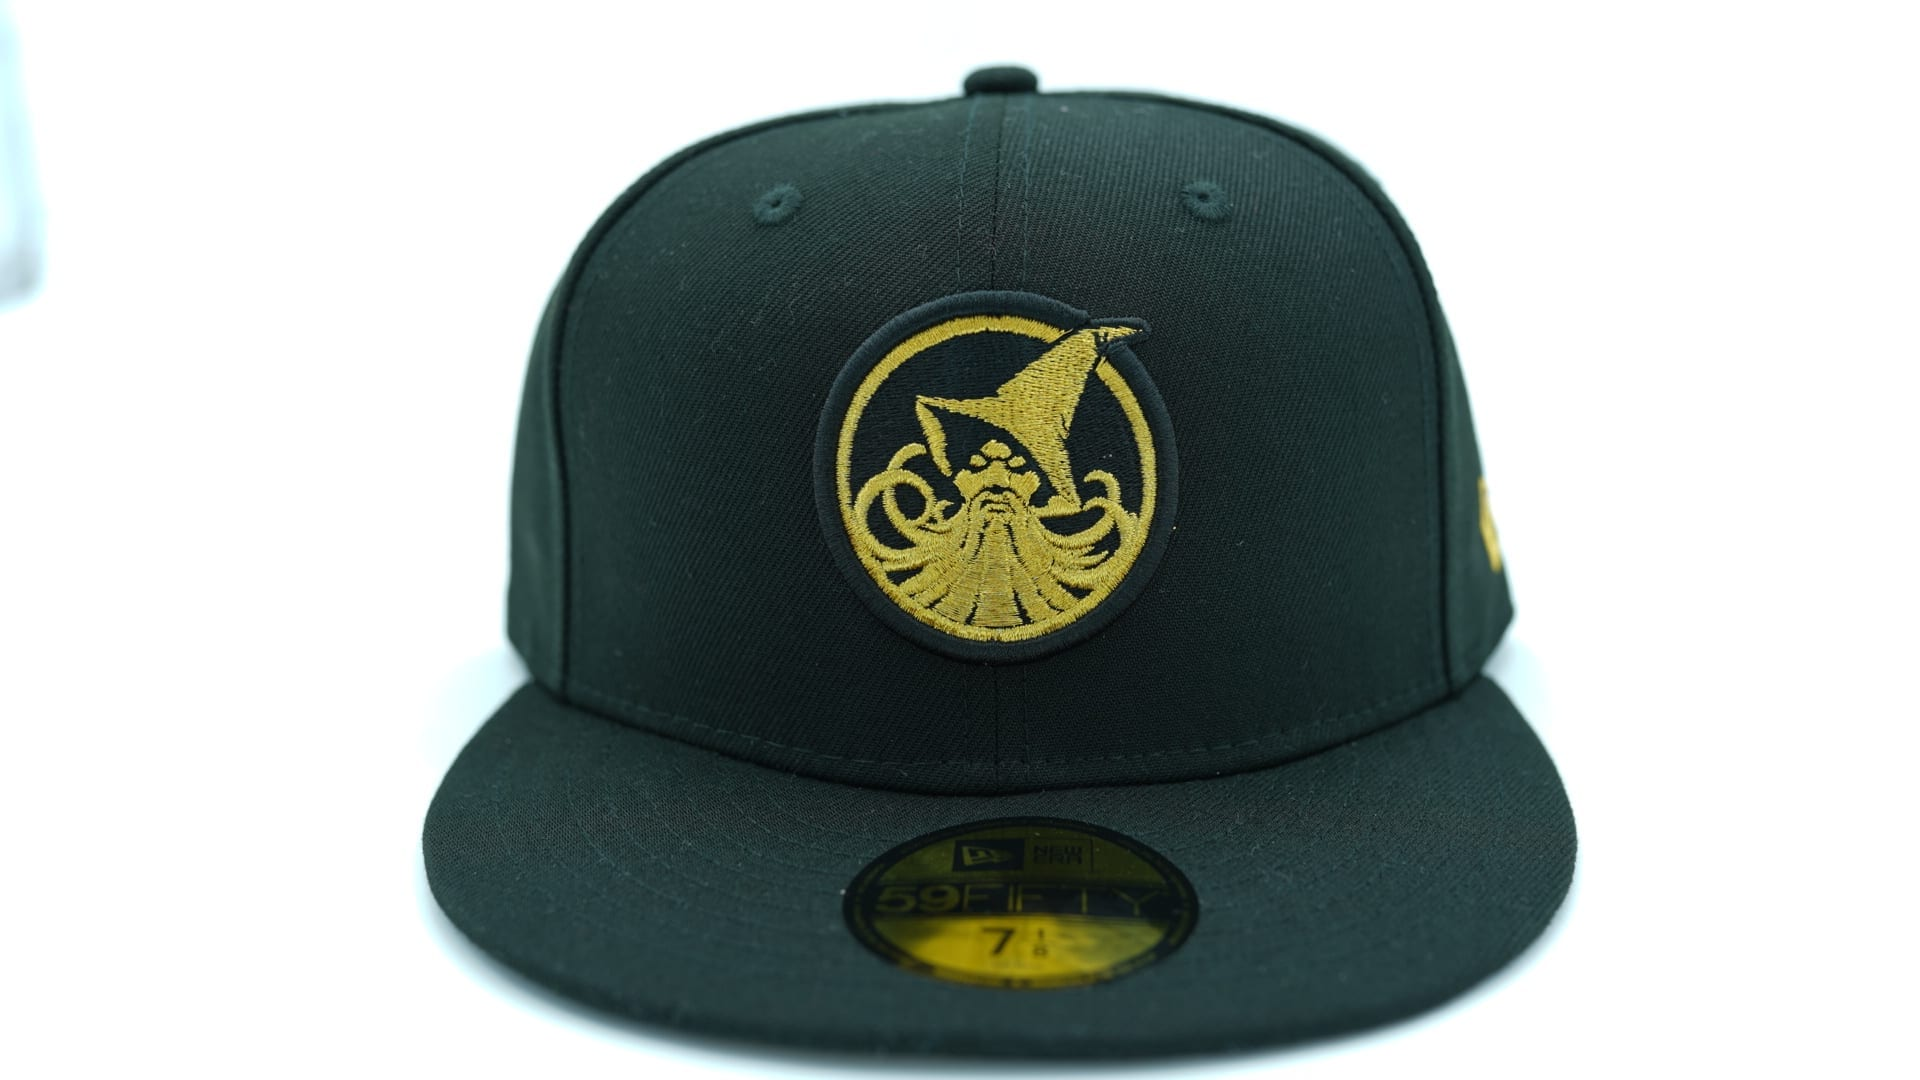 Jacksonville Jaguars Realtree Camo 59Fifty Fitted Baseball Cap by NFL x NEW ERA